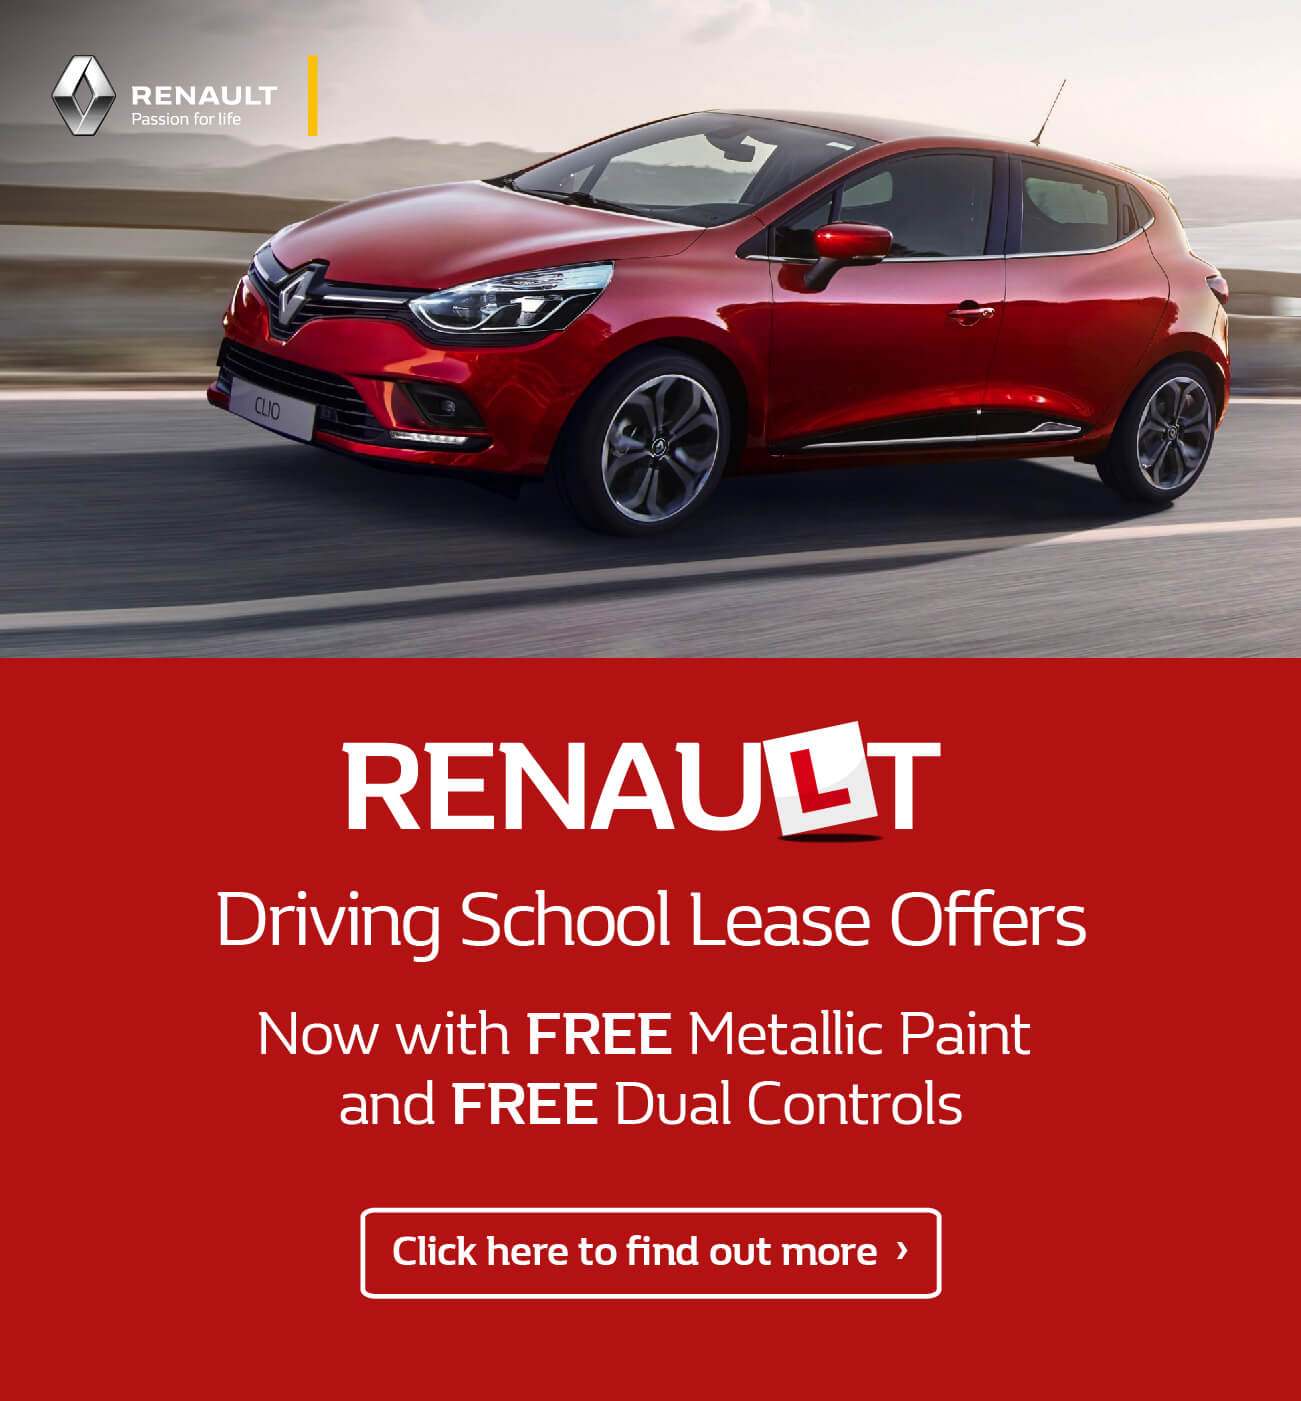 New Renualt Cars For Sale